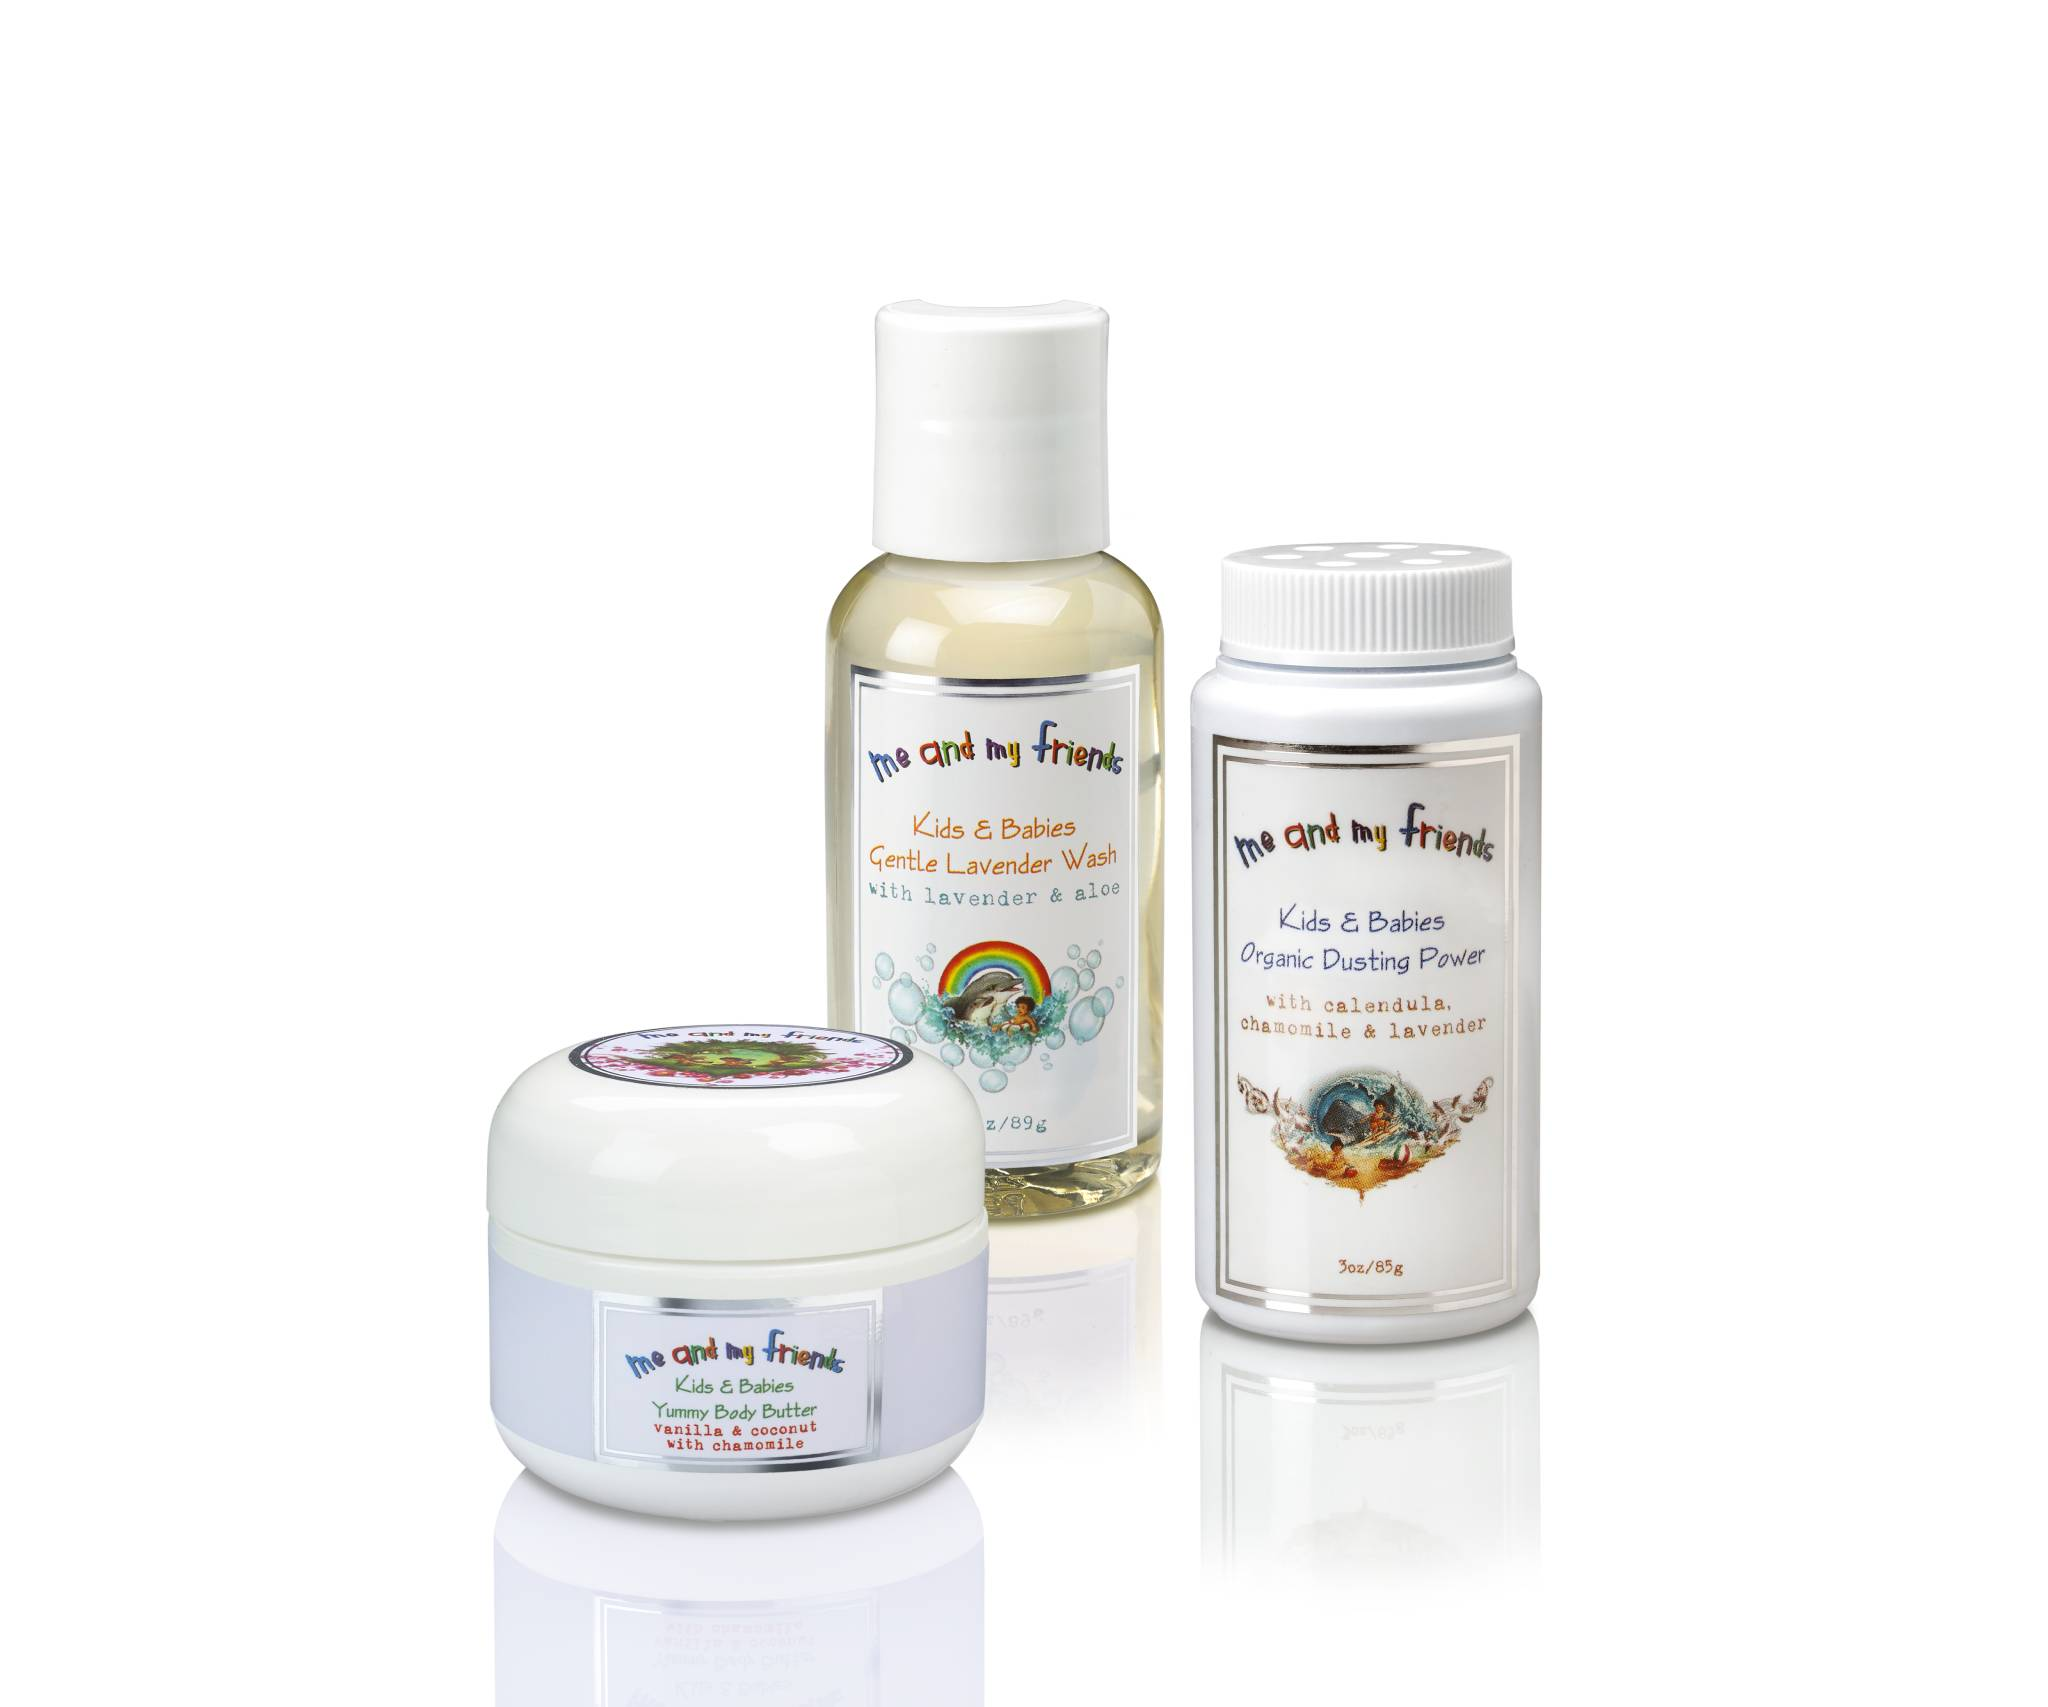 Kid safe, travel size lavender bath wash, coconut body butter and all natural powder